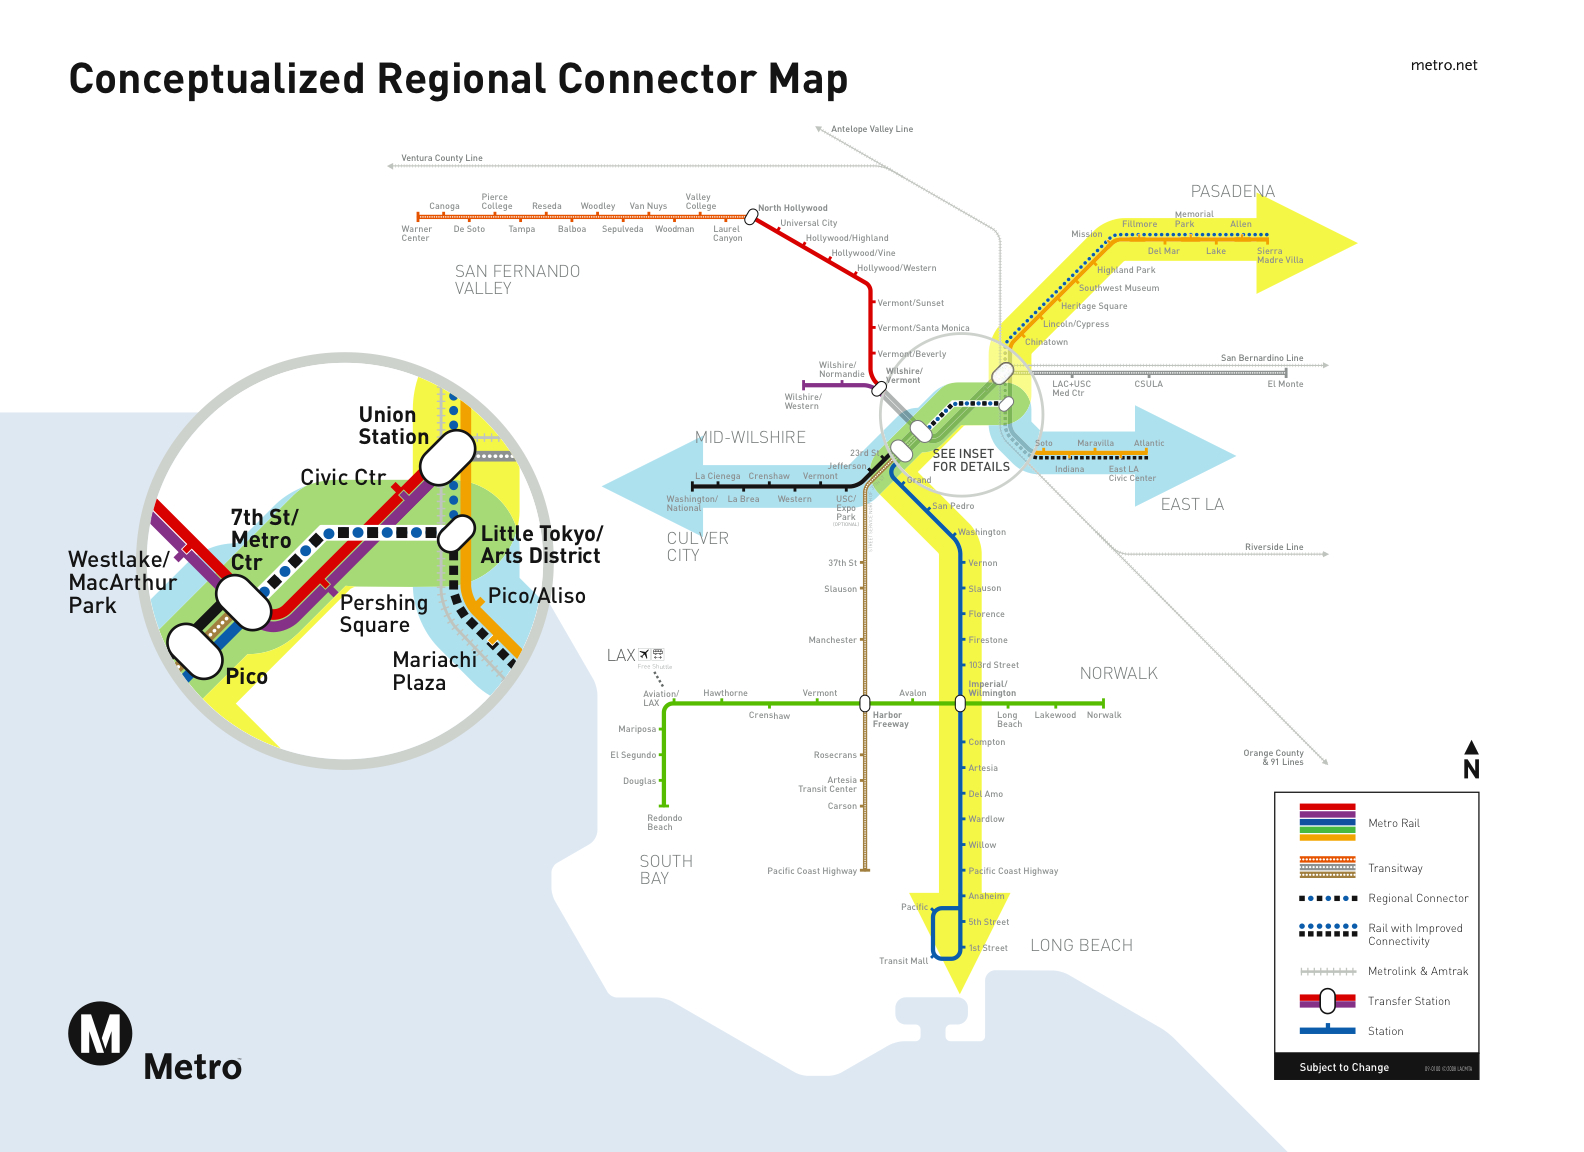 The regional connector will allow passengers on both Gold Lines, the Blue Line and Expo Line to travel through downtown without switching trains.